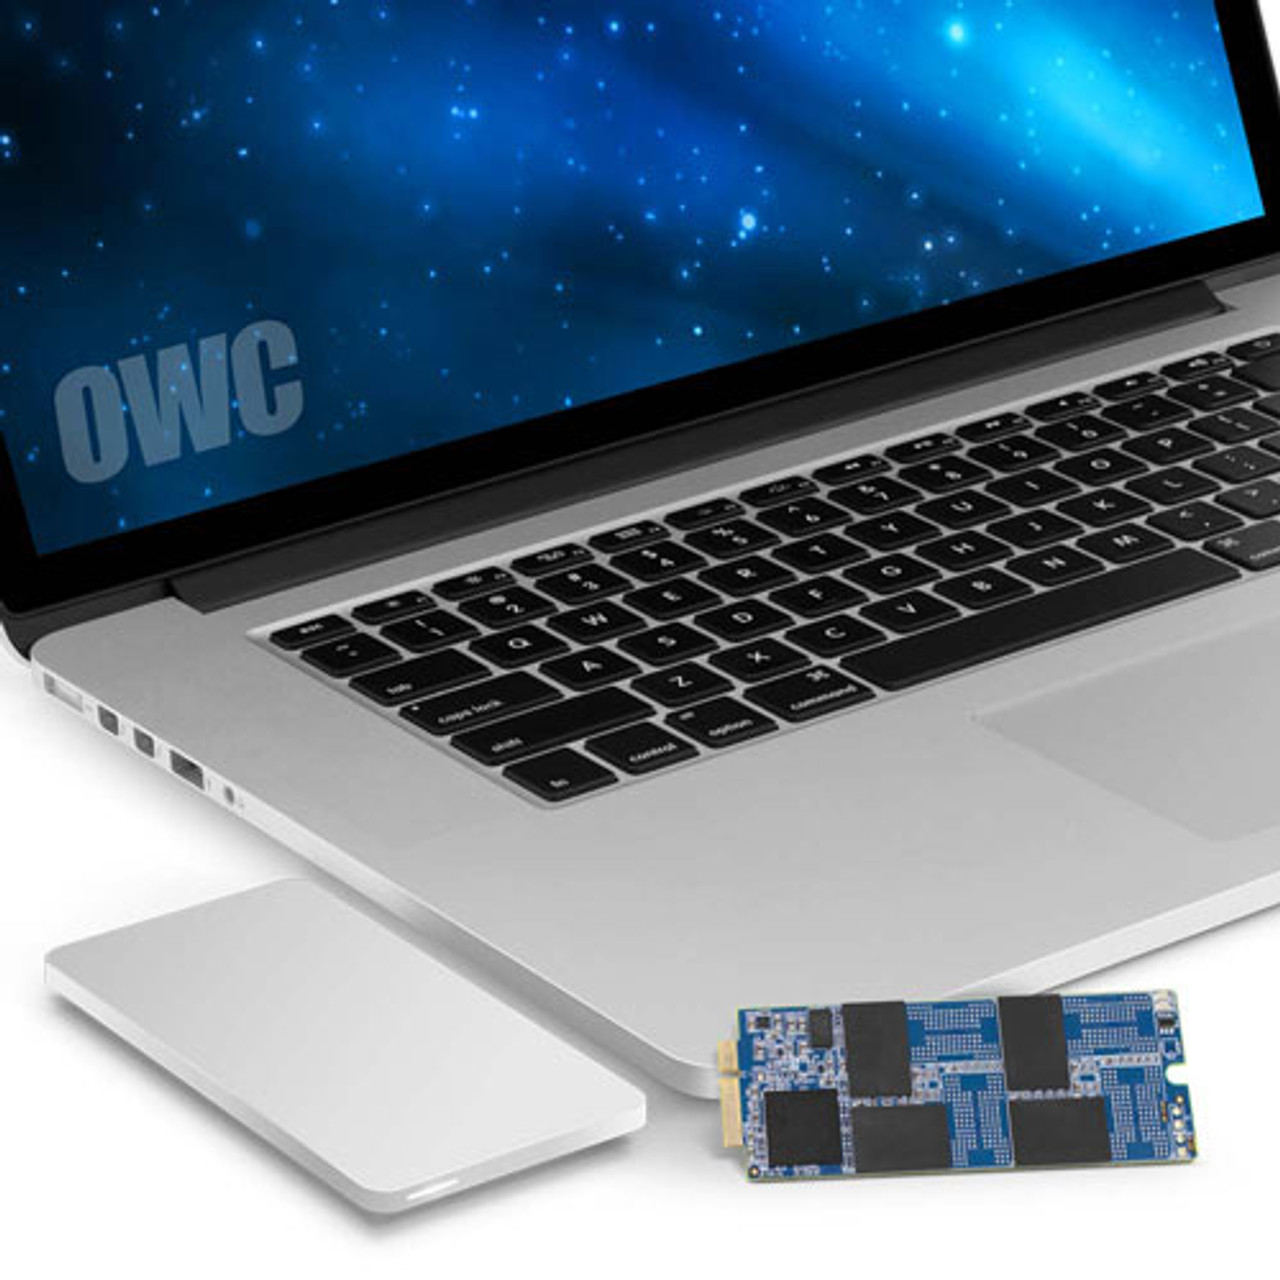 OWC 250GB Aura Pro 6G Solid-State Drive with Upgrade Kit for MacBook Pro with Retina Display (2012 - Early 2013)